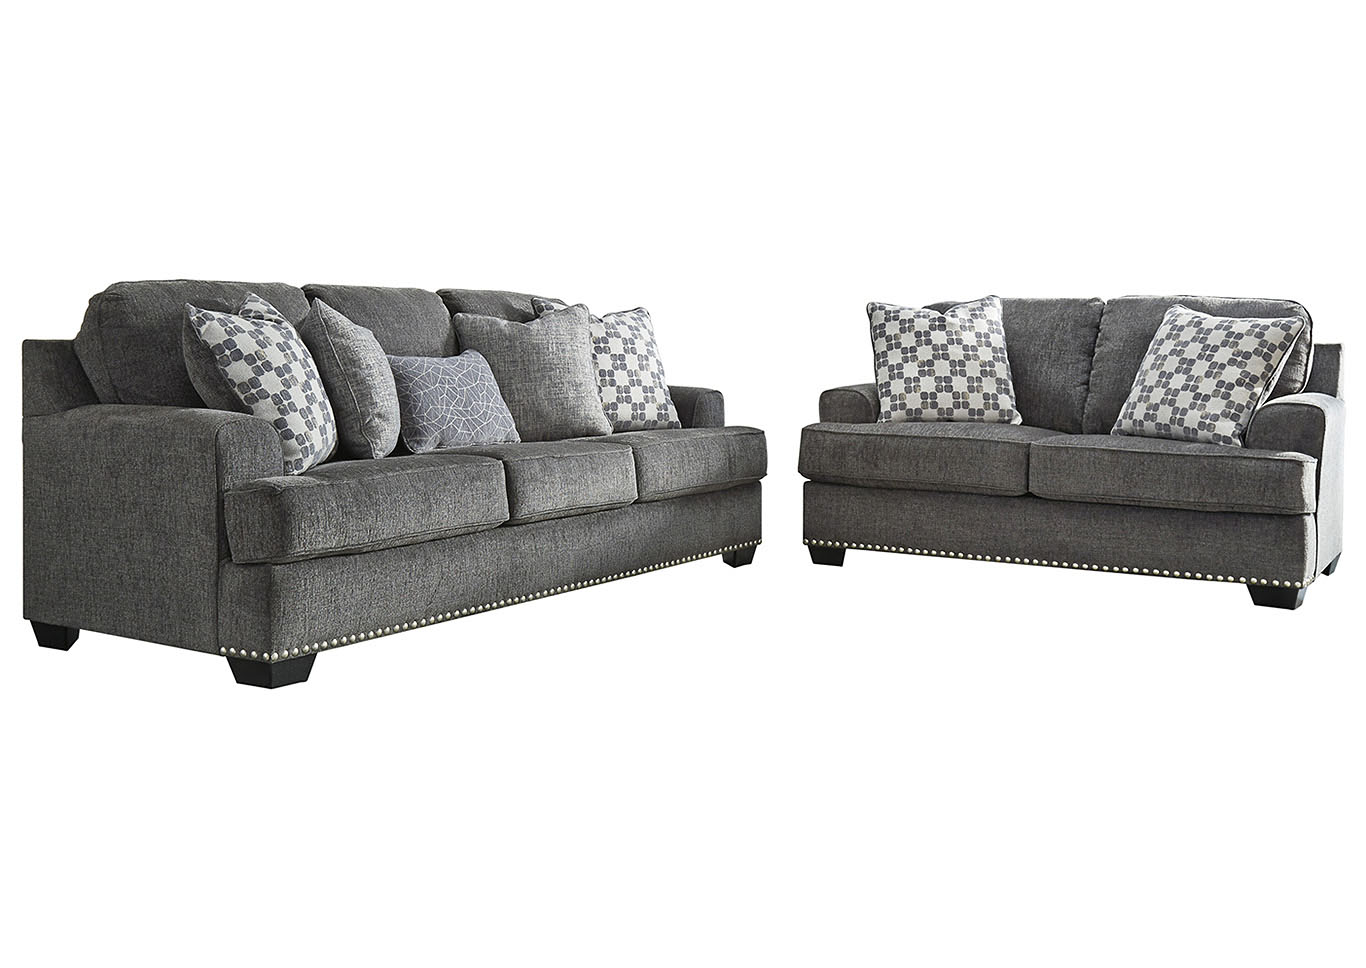 Locklin Carbon Sofa & Loveseat w/7 Pillows,Signature Design By Ashley